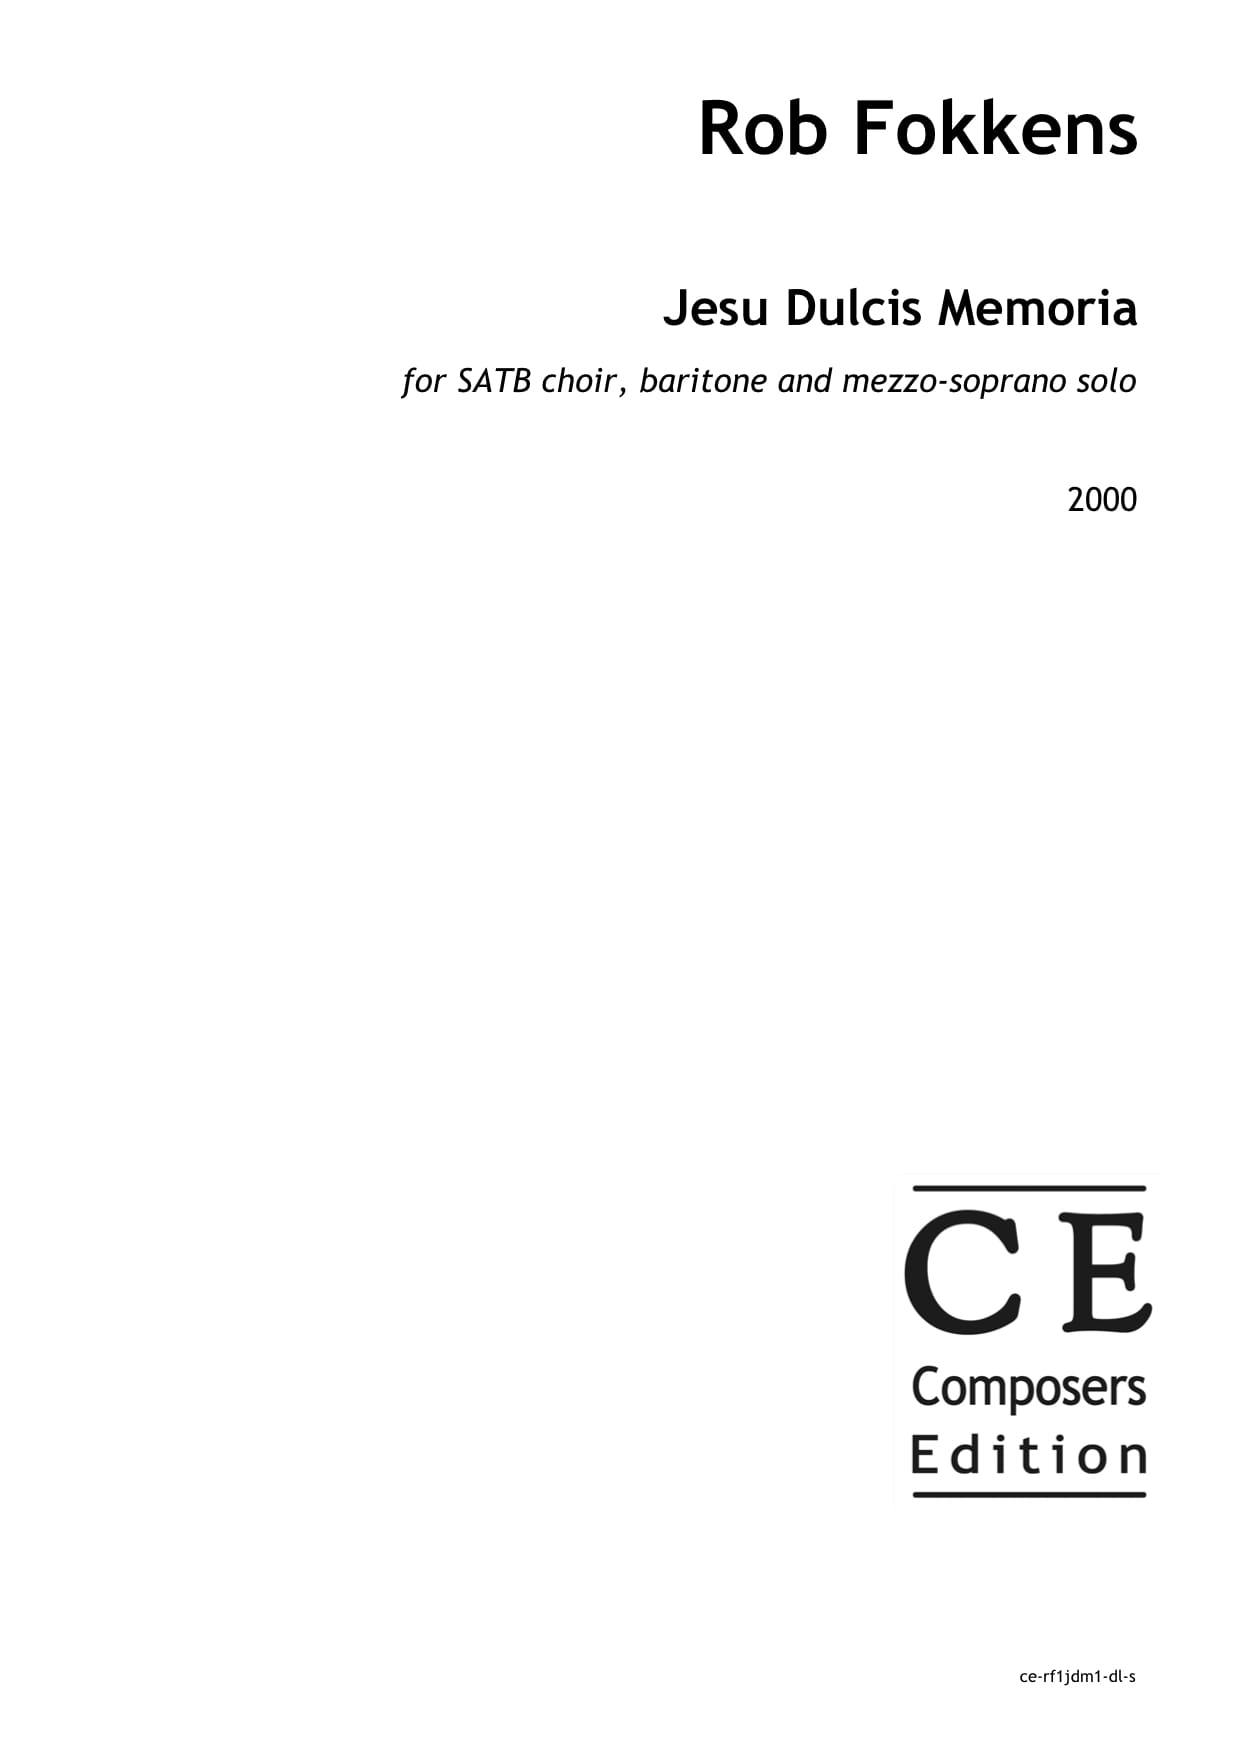 Rob Fokkens: Jesu Dulcis Memoria for SATB choir, baritone and mezzo-soprano solo